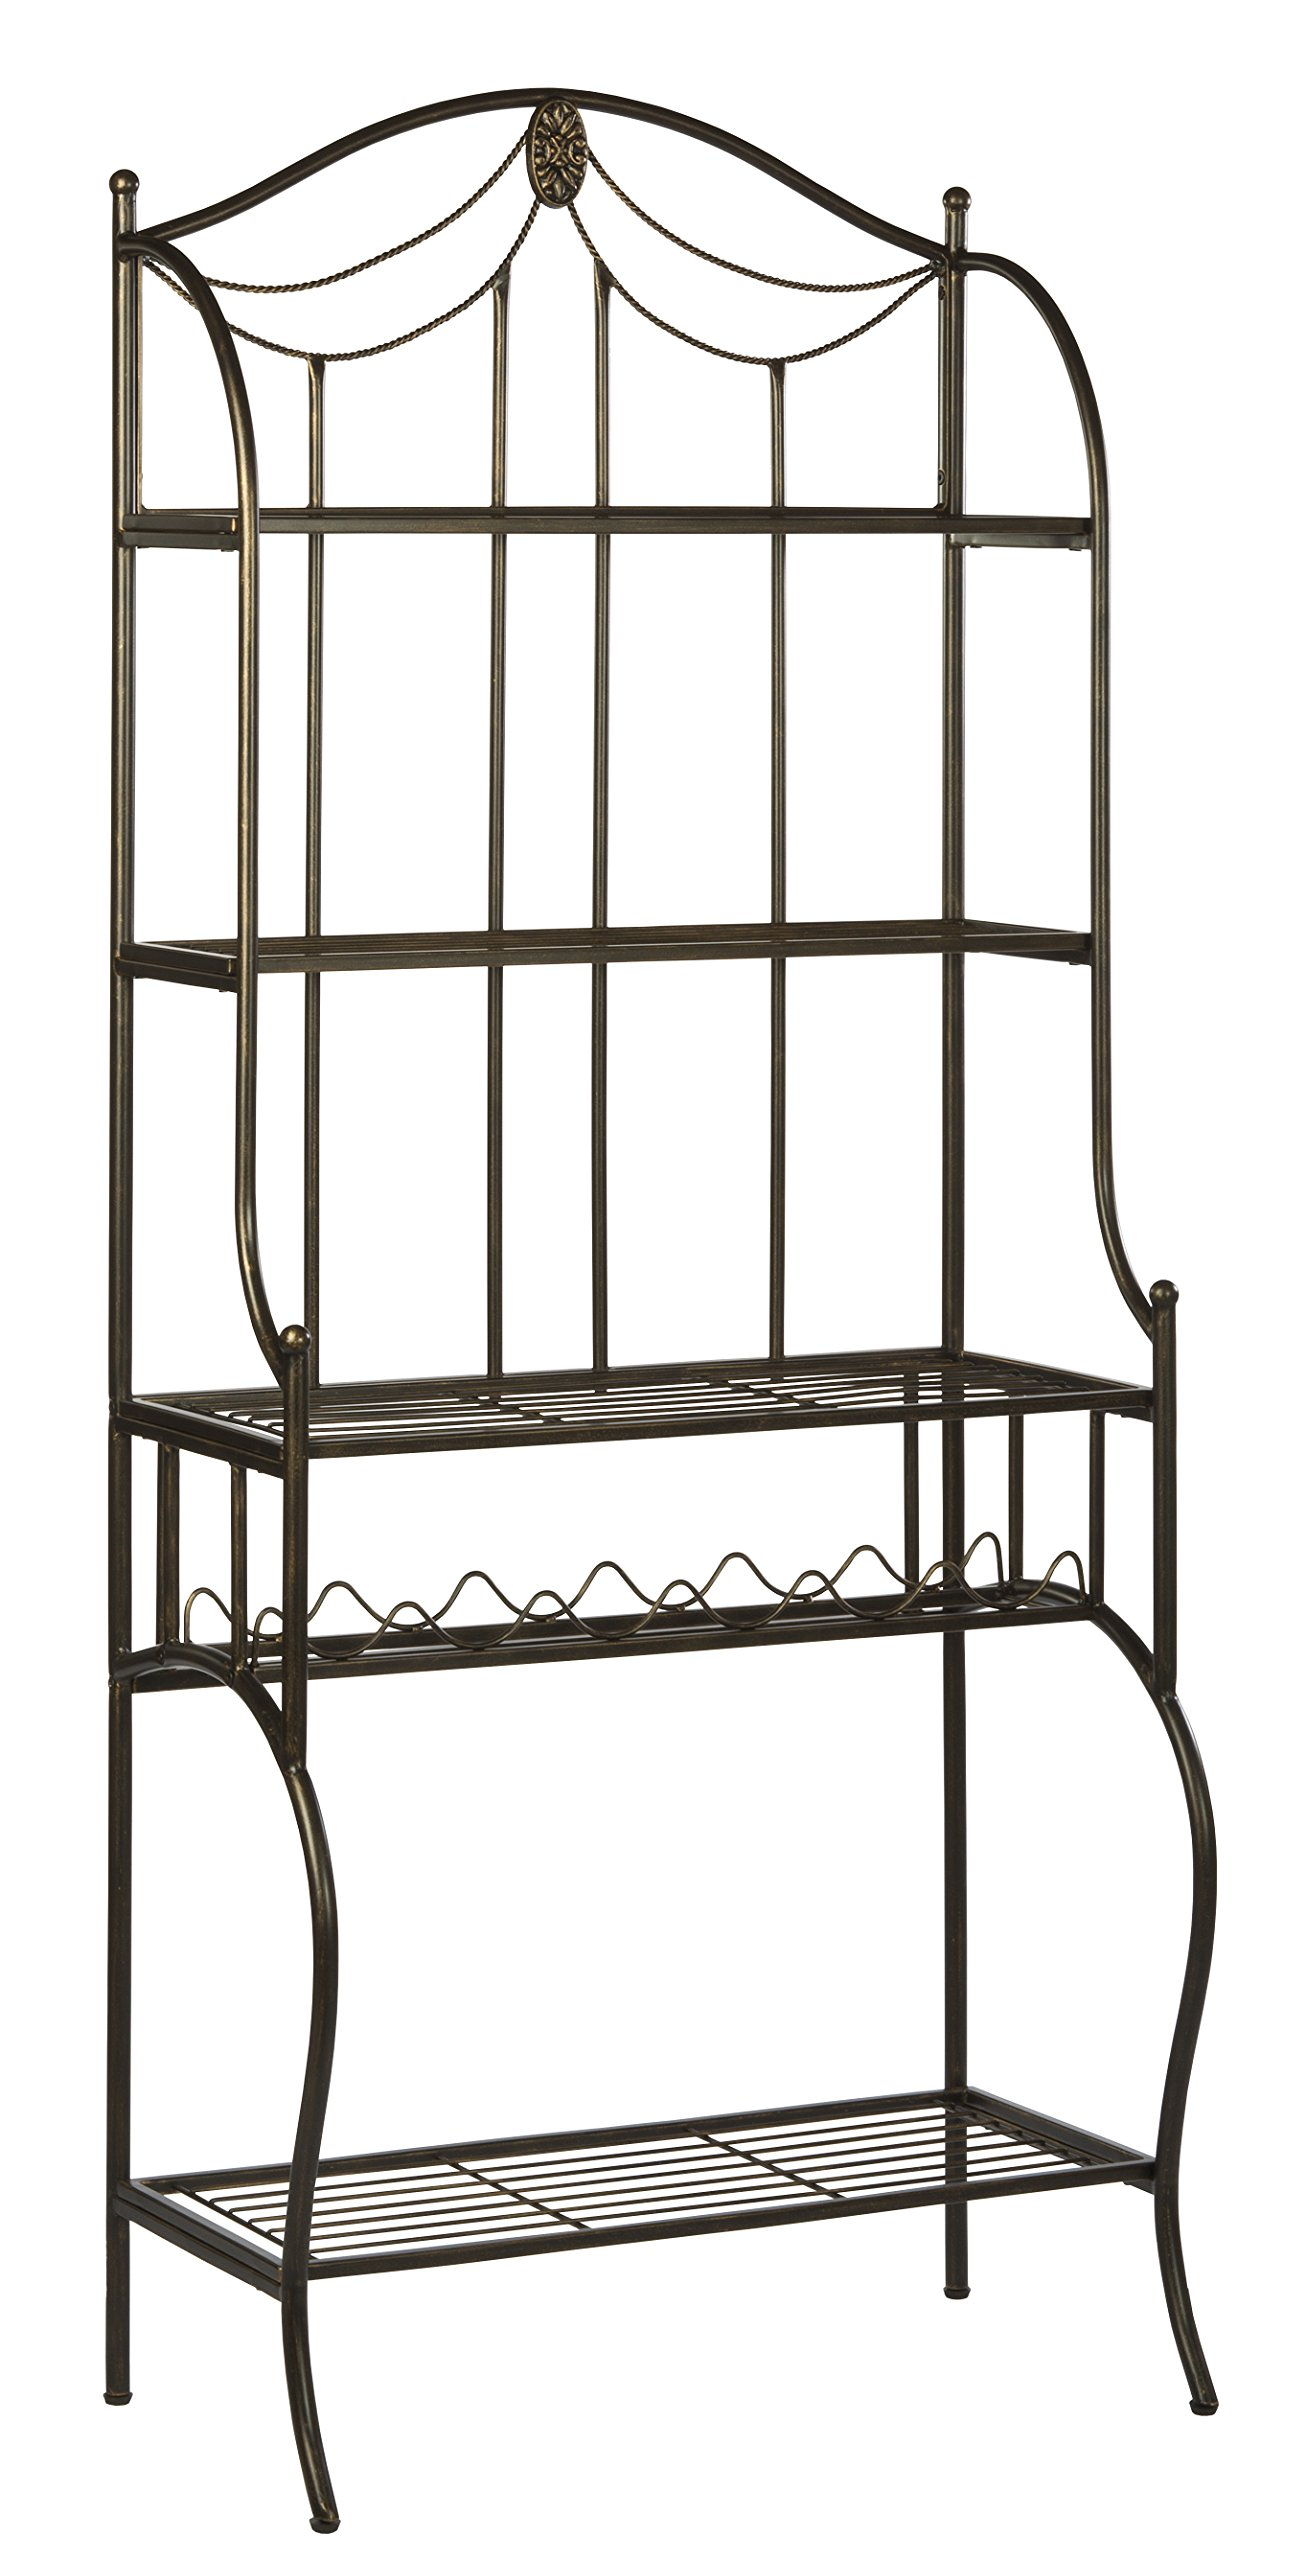 Hillsdale Camelot Baker's Rack, Black with gold highlights